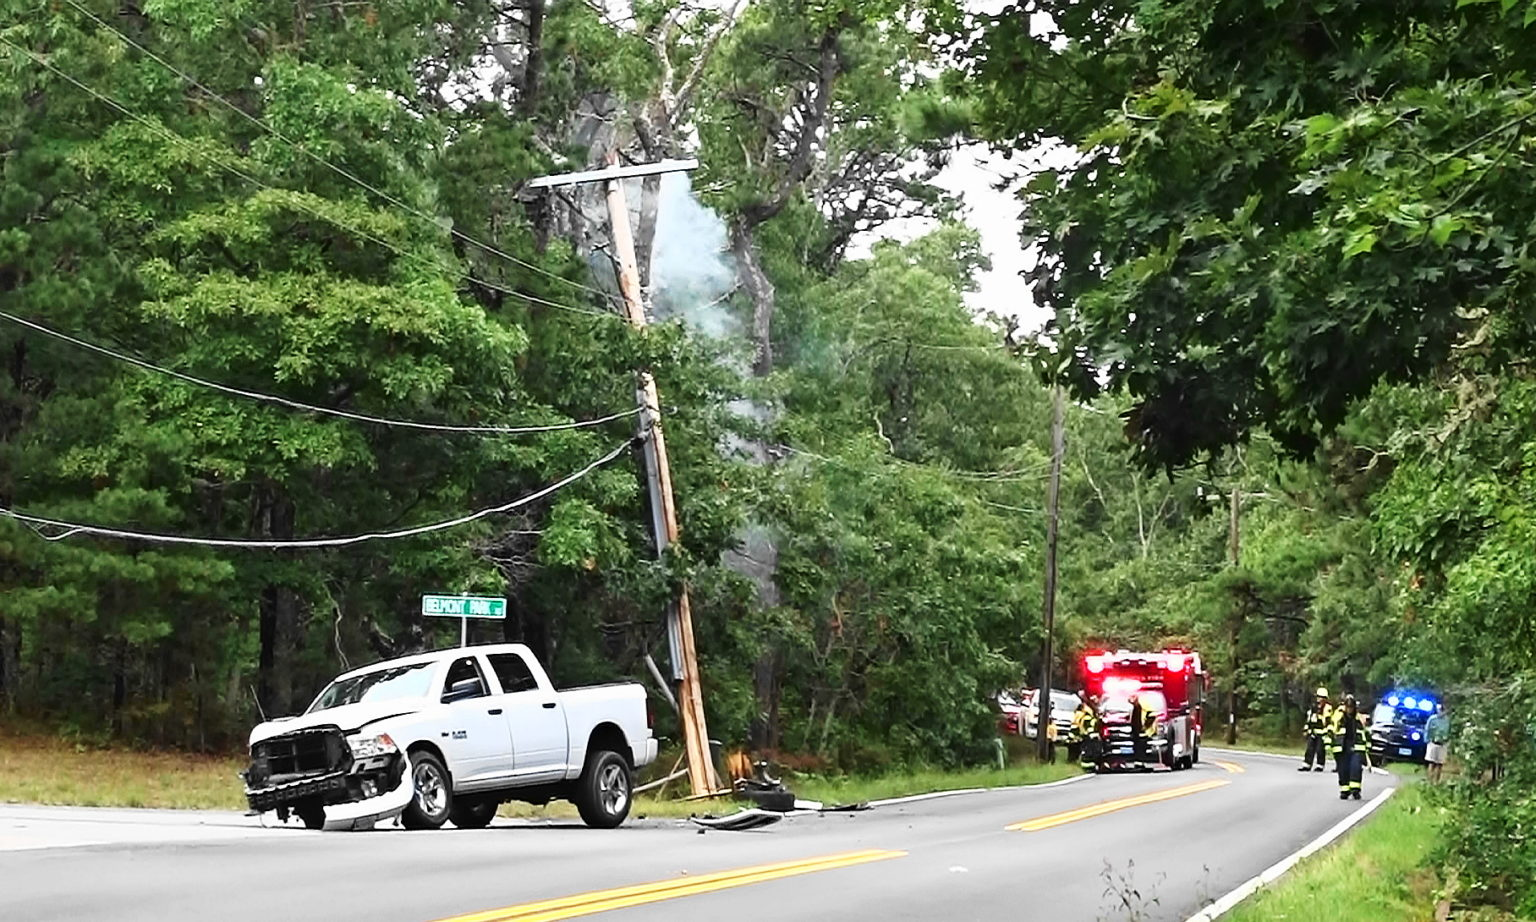 Fgo the stage website release pickup summon part 2. Video report: Driver escapes injury in pickup vs pole in Brewster - Brewster Fire Department